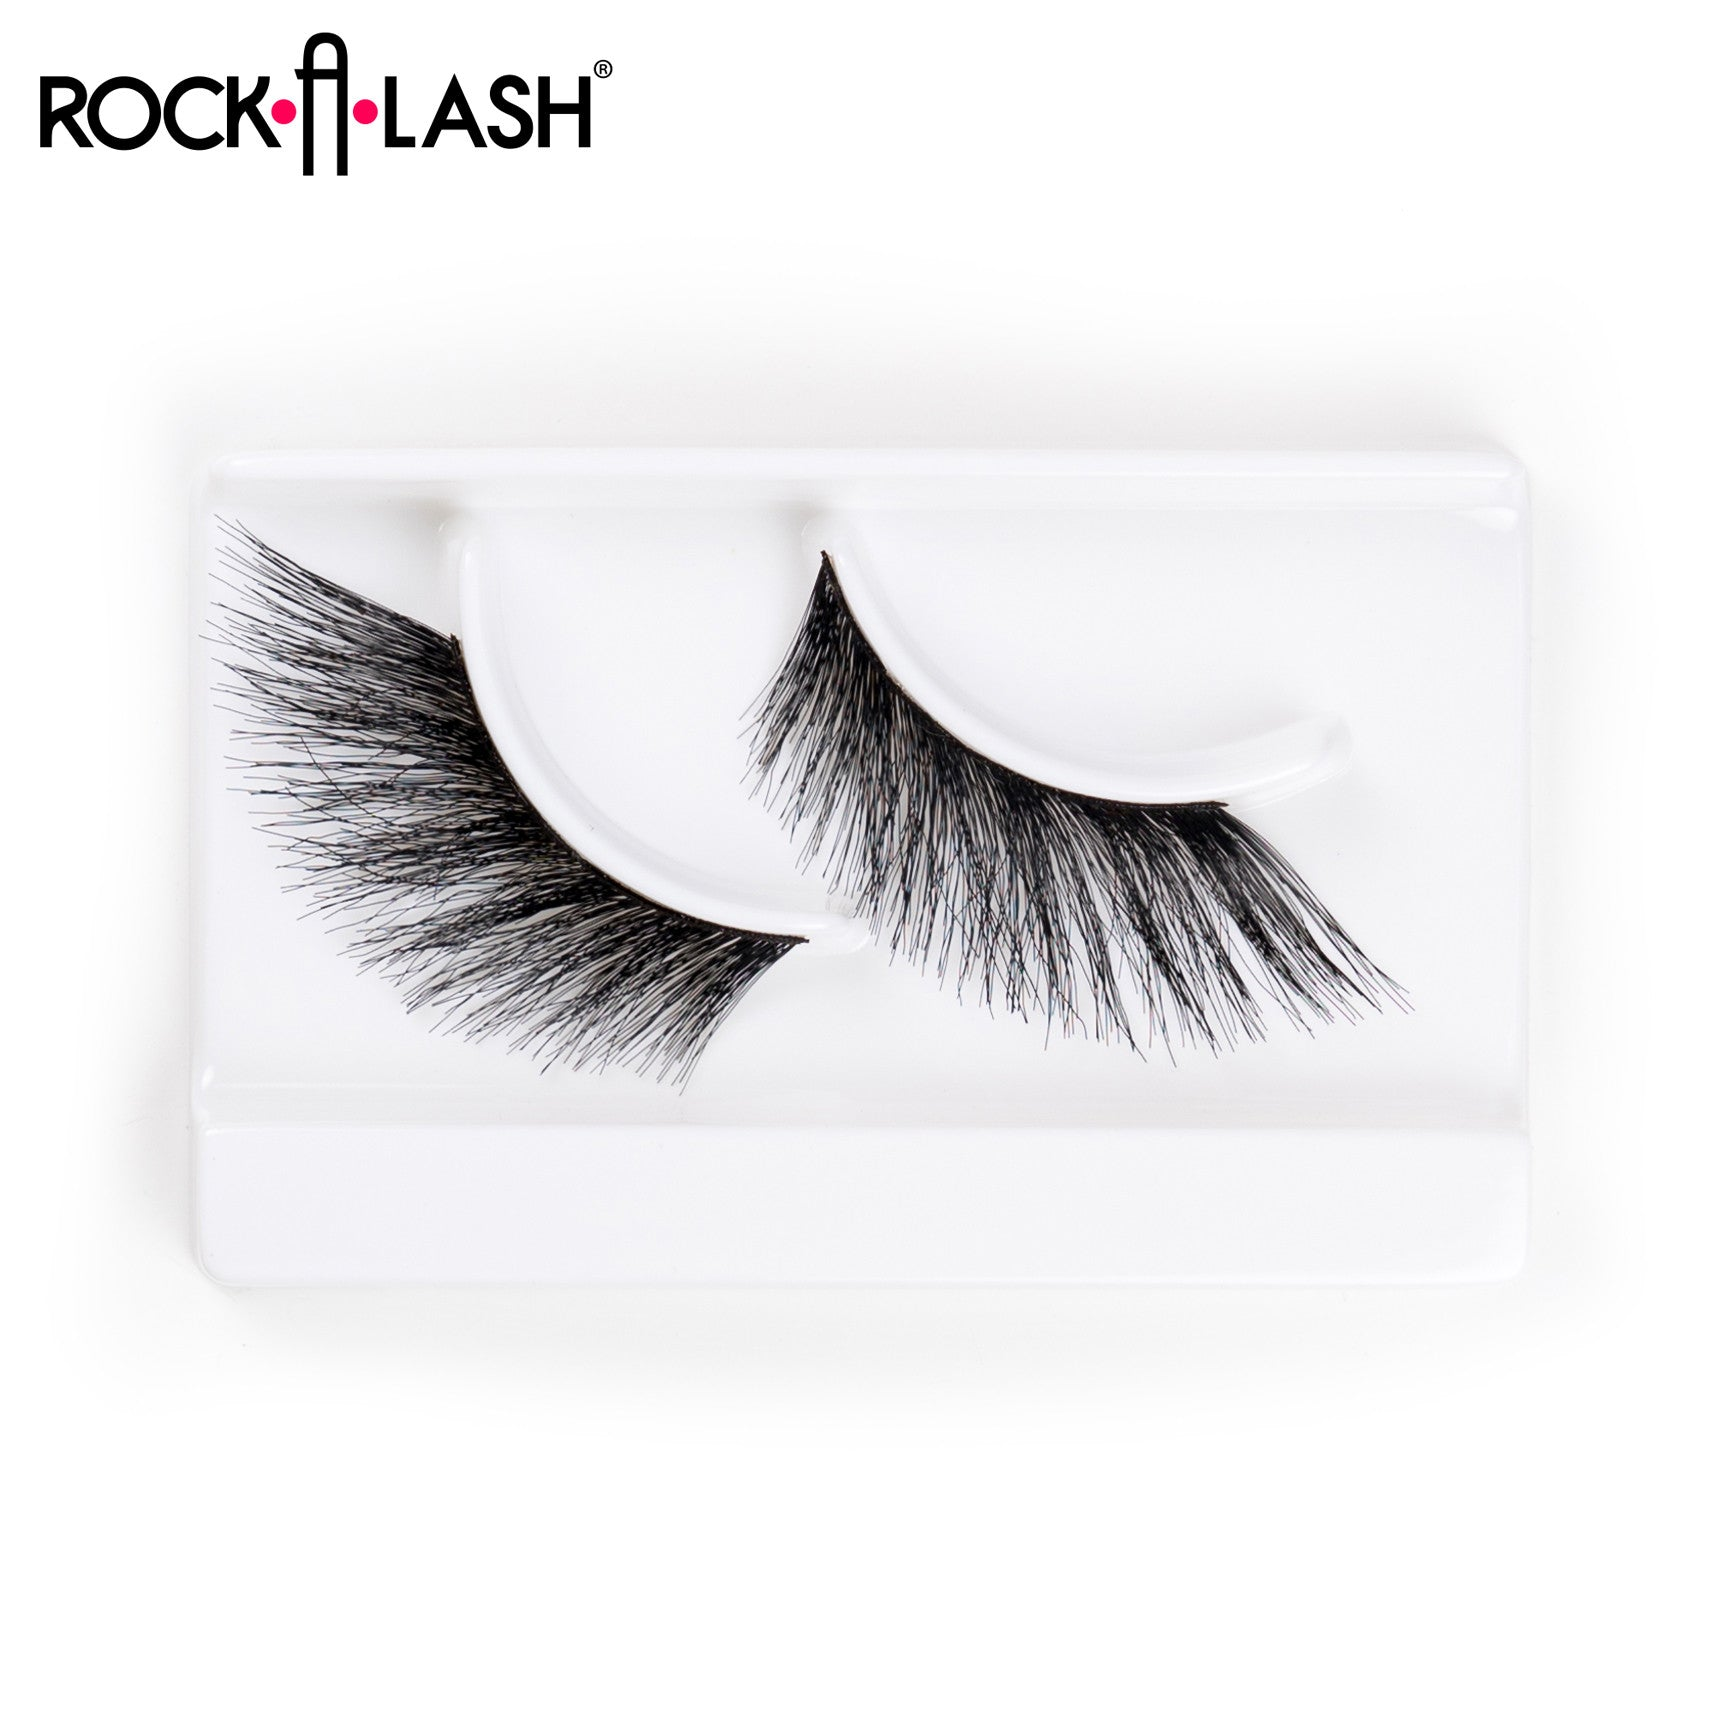 Rock-A-Lash ® <br> #19 Milan - 1 Pair